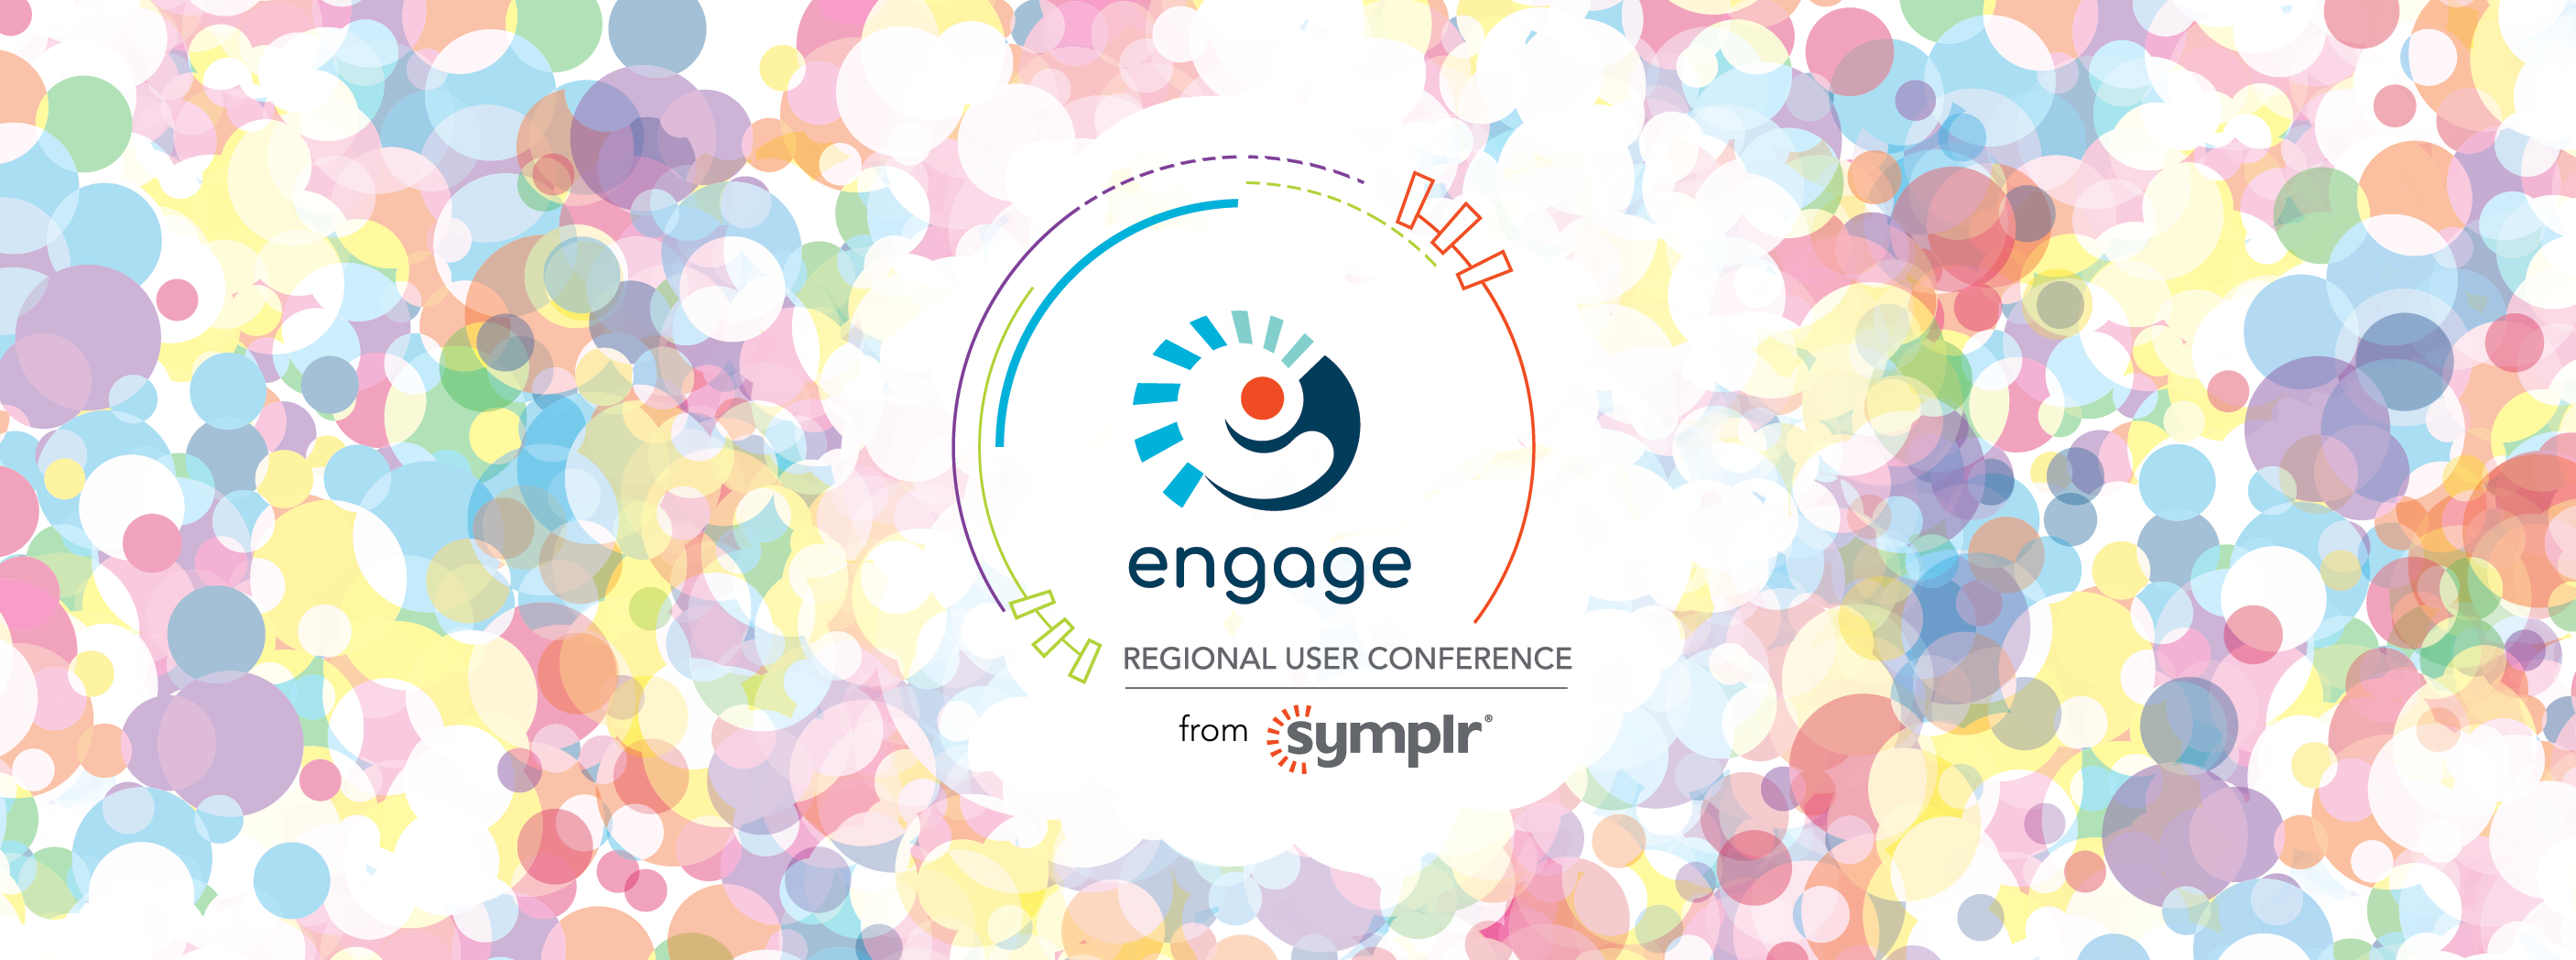 symplr engage 2019 Regional User Conference Registration Now Open